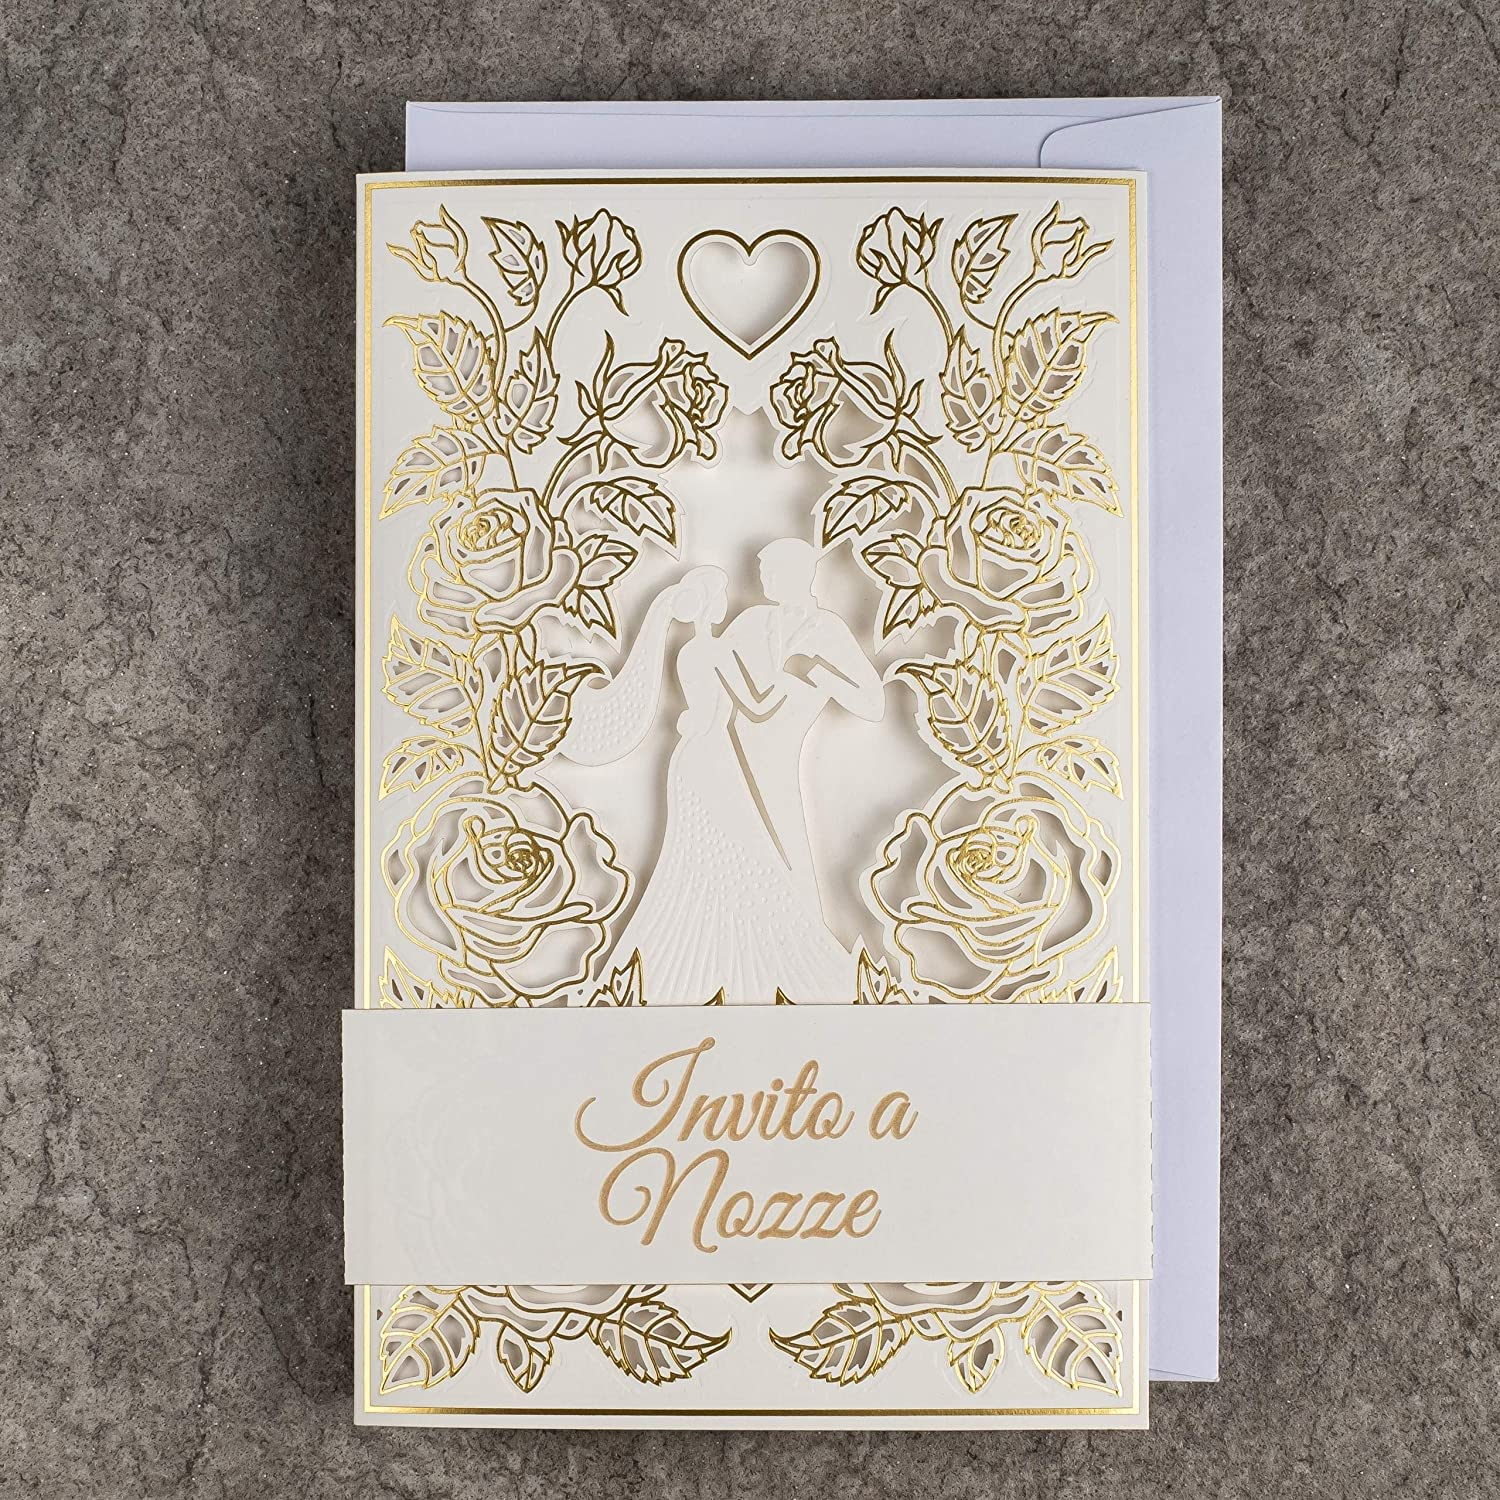 20pcs Gold Foiled Design ON Double Coated Paper 120x170mm with Printable Inners and ENVELOPES for Wedding Art NUVO Wedding Invitations Cards